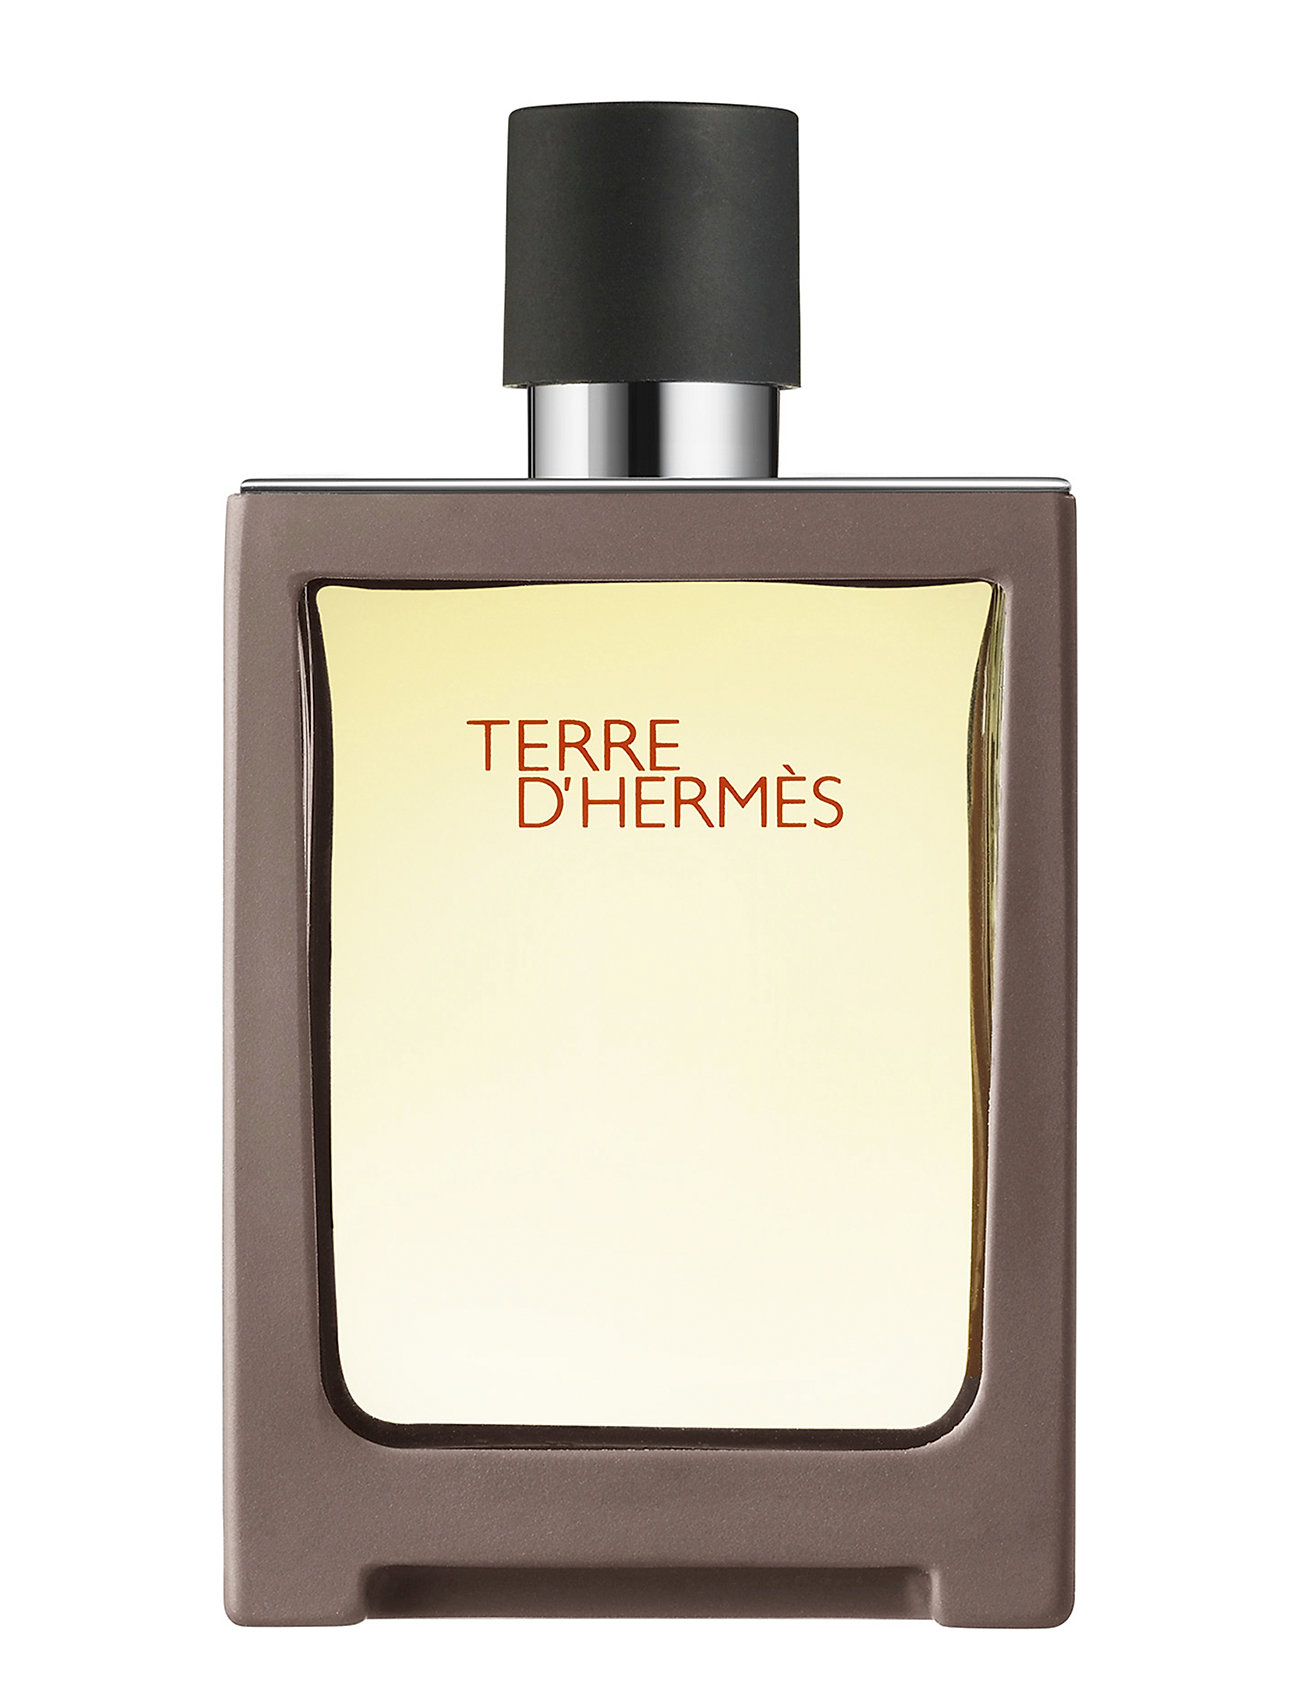 HERMÈS Terre d'Hermès Eau de Toilette,  travel spray - CLEAR